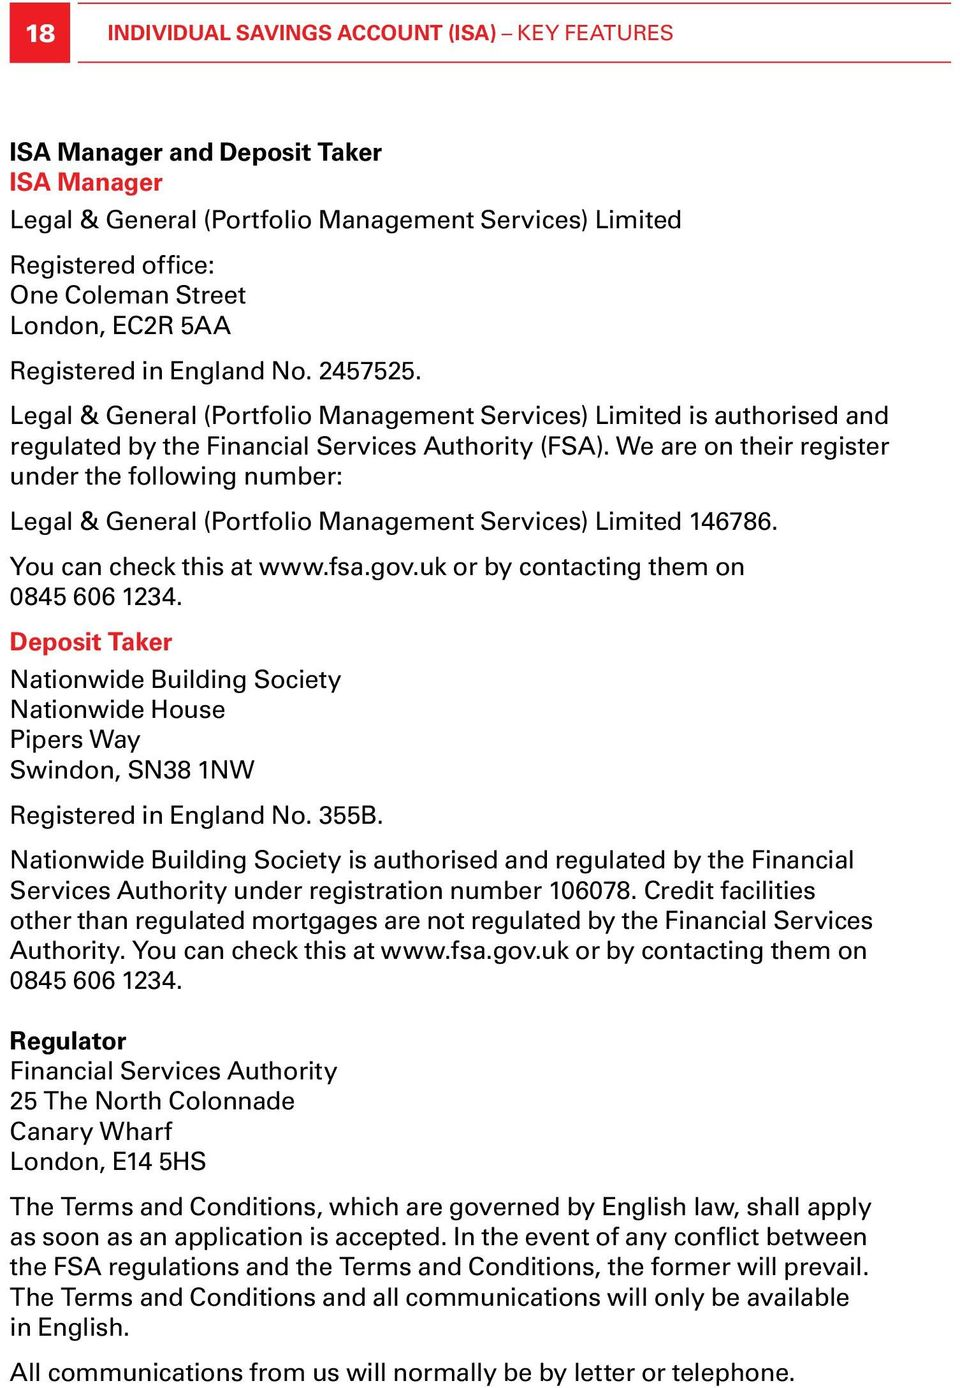 We are on their register under the following number: Legal & General (Portfolio Management Services) Limited 146786. You can check this at www.fsa.gov.uk or by contacting them on 0845 606 1234.